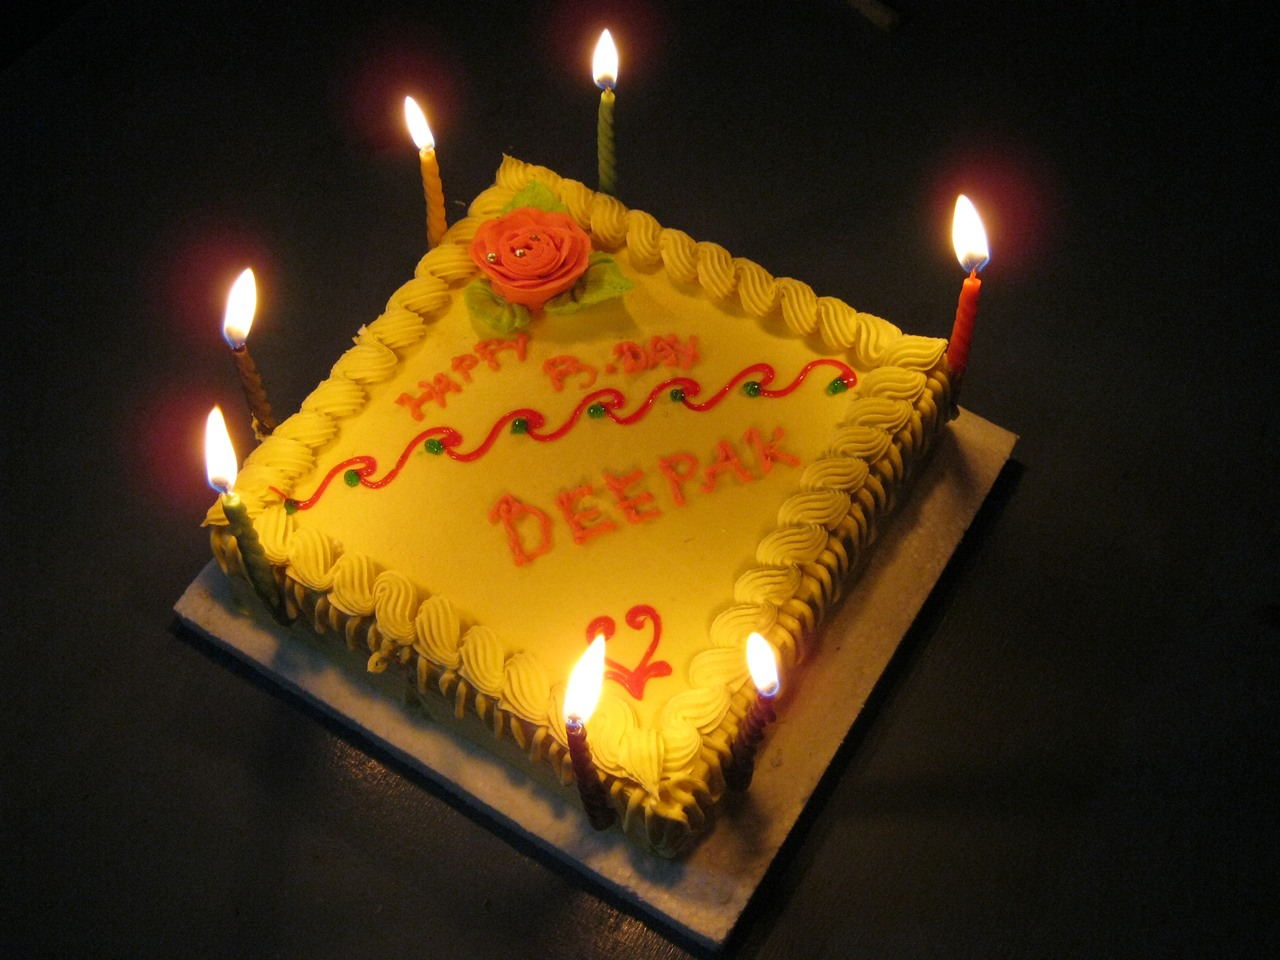 Deepak Birthday Cake Image Download : Deepak B Day Cake - Deepak Ranjan Mahanta